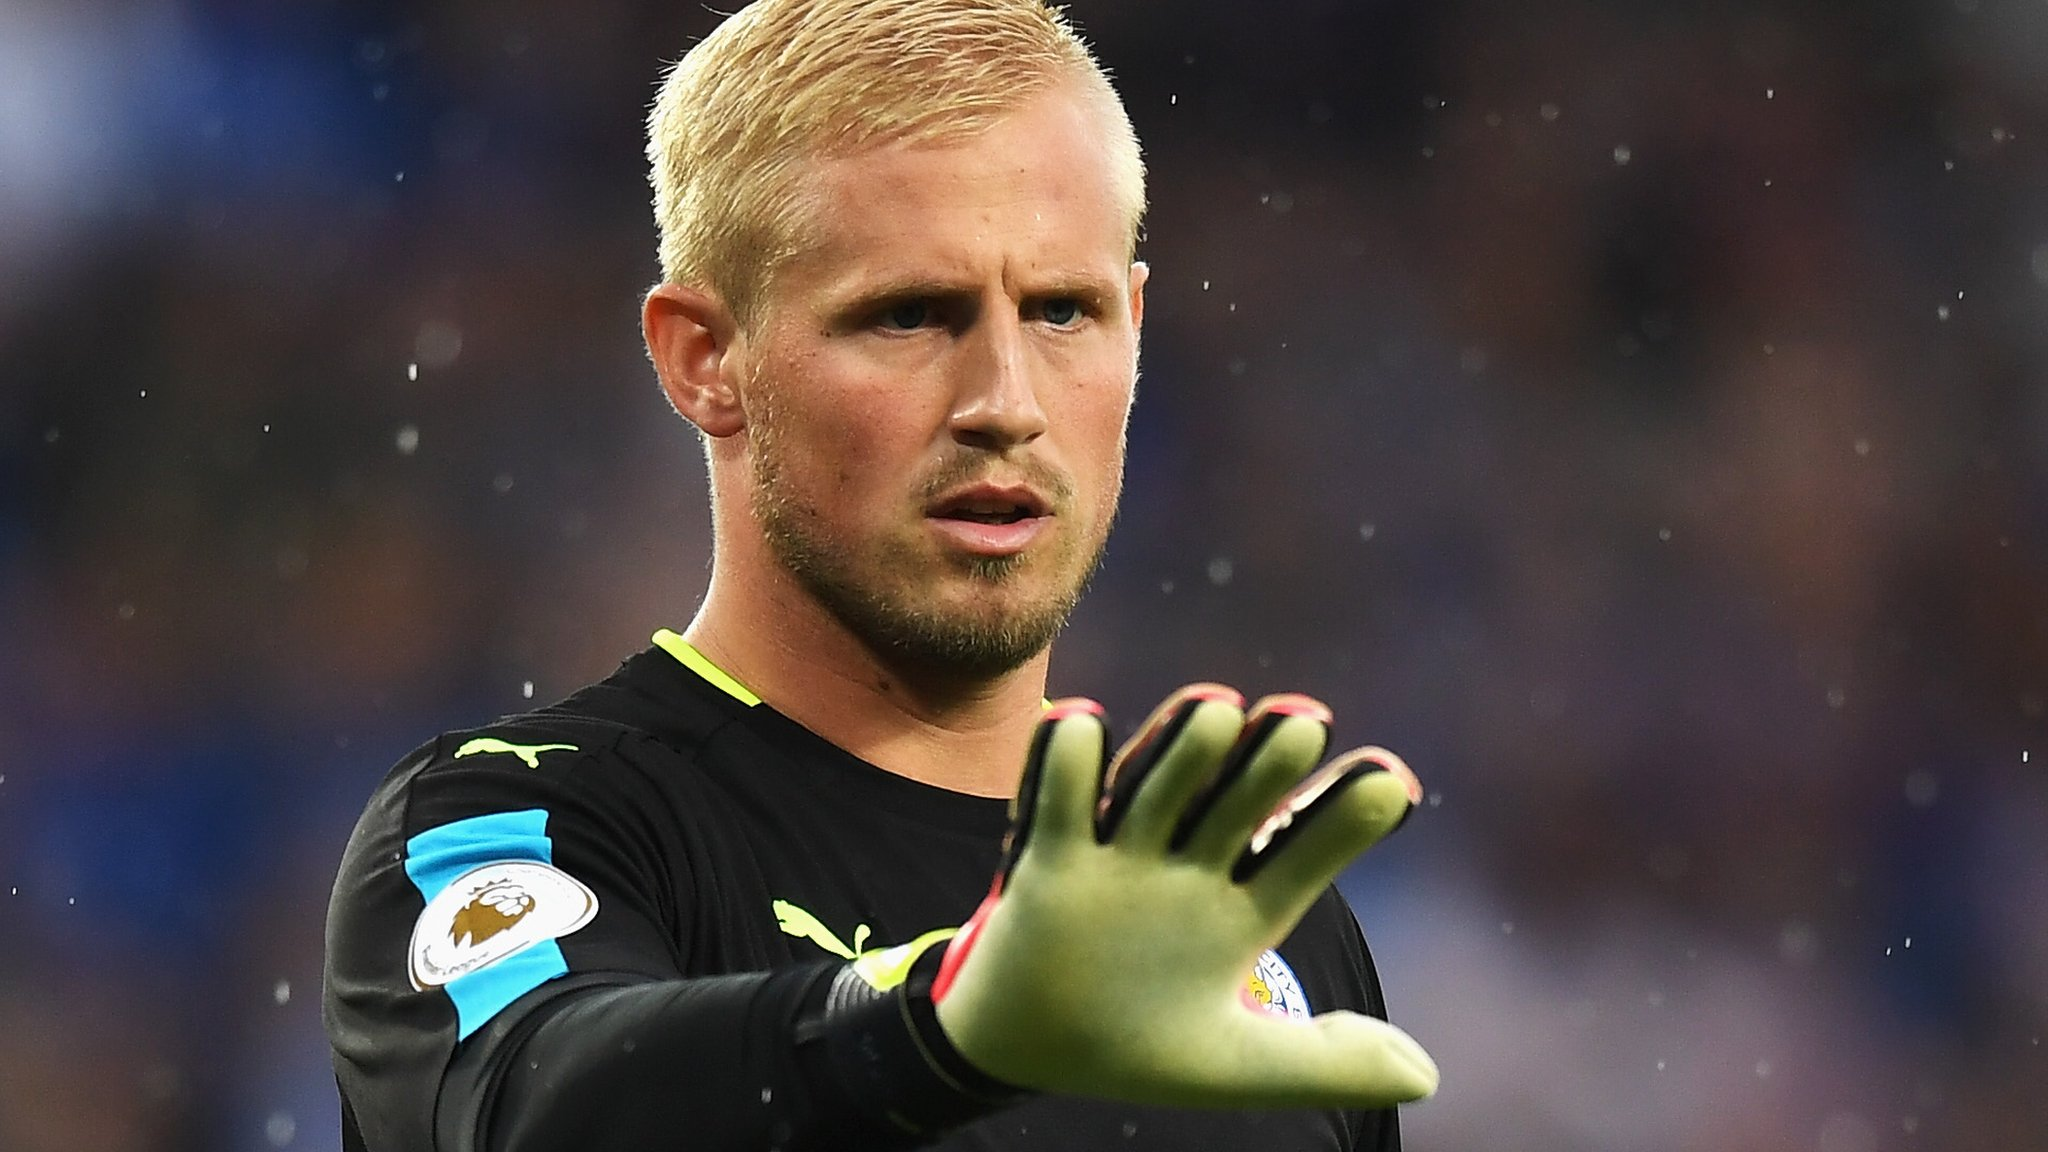 Schmeichel poised for Leicester return in Champions League